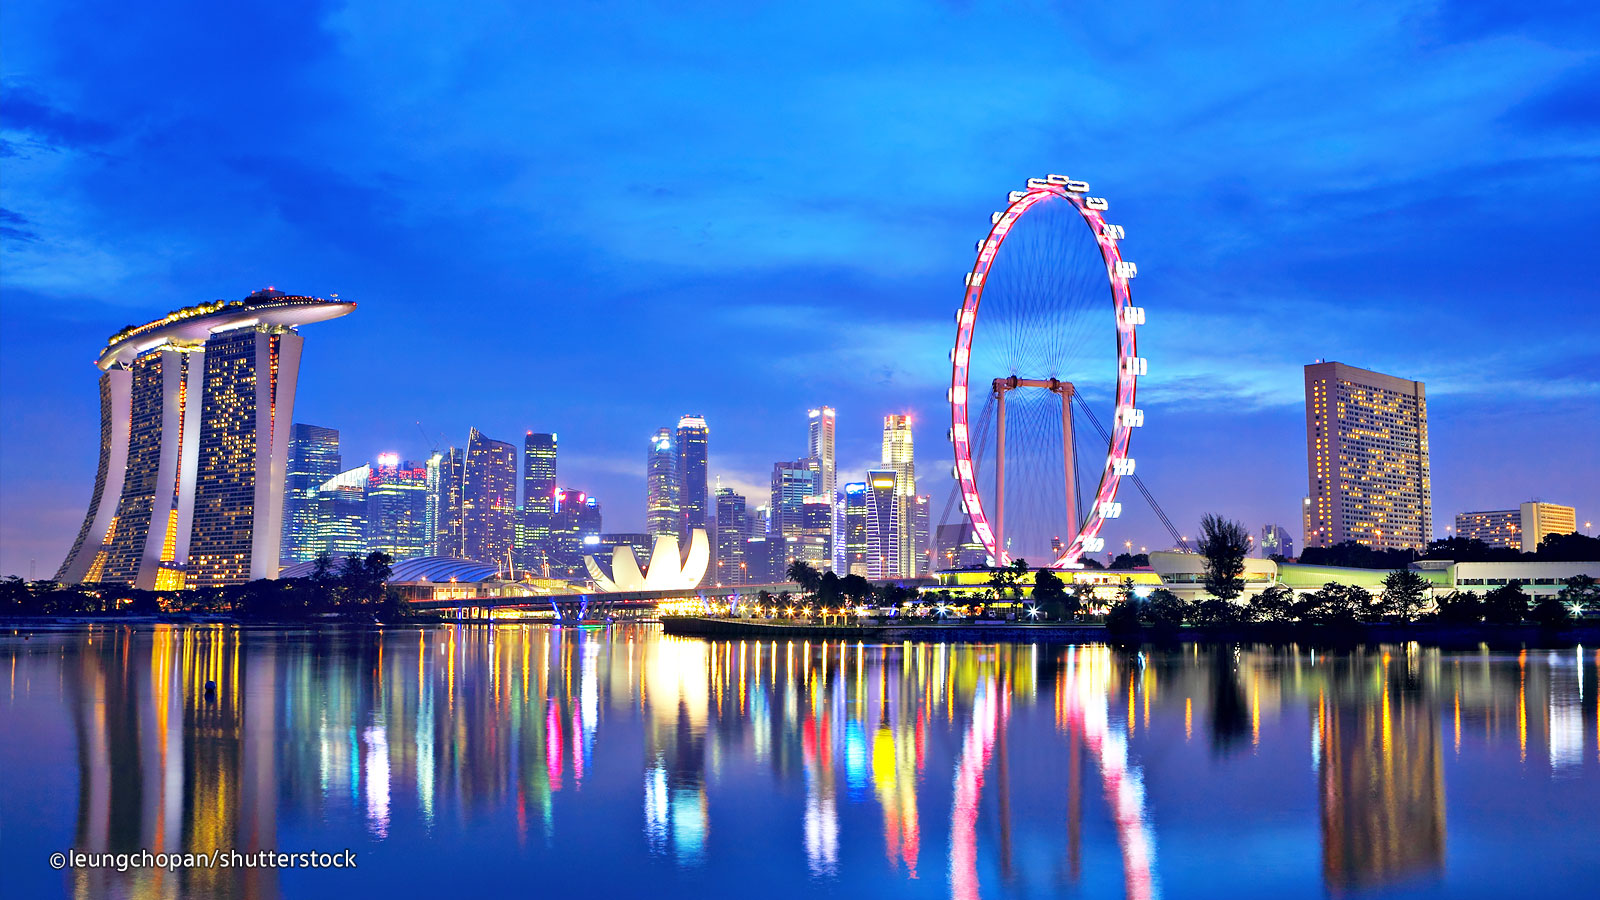 Singapore flyer and Marina bay at night